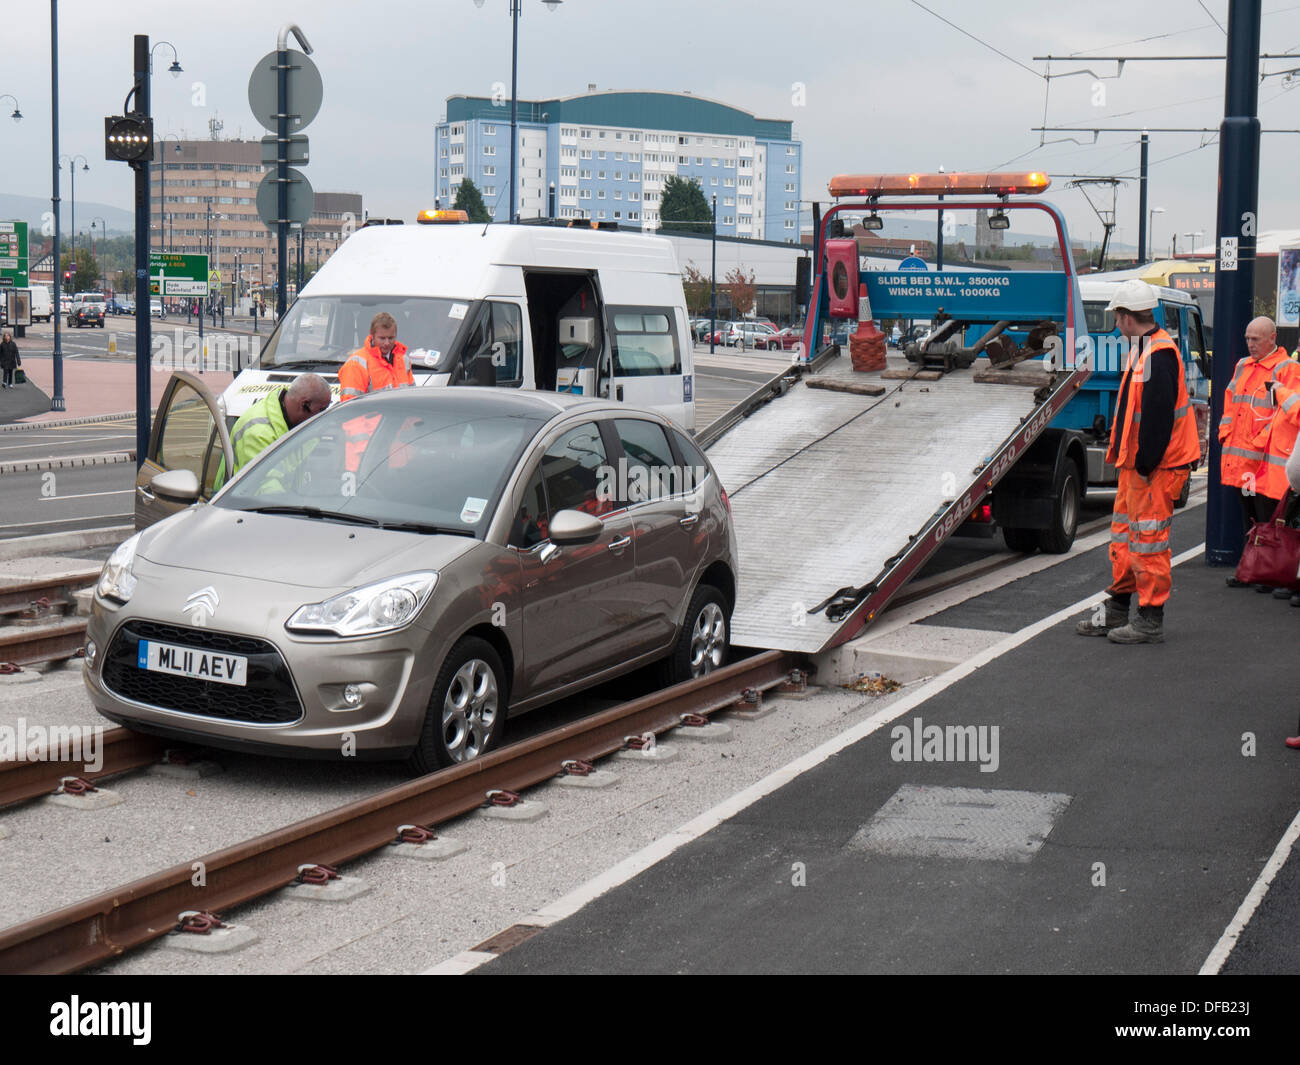 Ashton-under-Lyne, Greater Manchester, UK. 01st Oct, 2013. A car was driven onto the new Metrolink tram tracks near the centre of Ashton-under-Lyne, which has not yet opened for passenger services. There were no injuries. The final phase of testing began yesterday (30 Sept) and full passenger services are due to begin next week on the 9th October. Credit:  Vincent Lowe/Alamy Live News - Stock Image